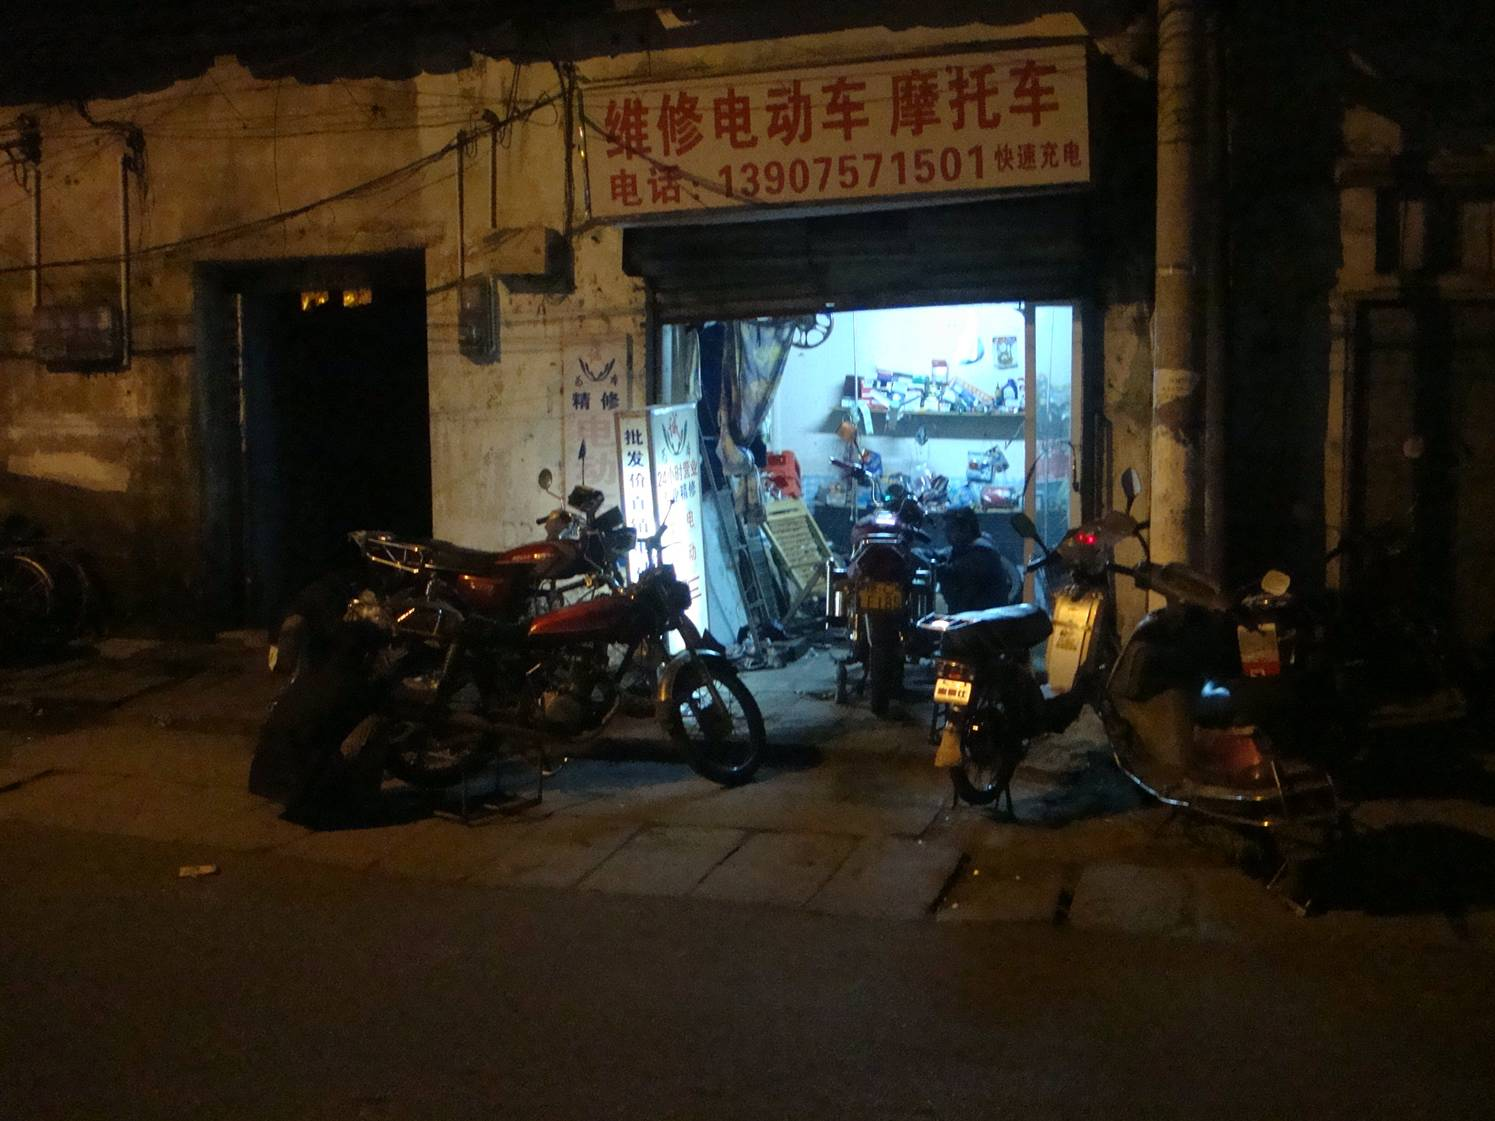 Picture:  Motorcycle maintenance goes late into the evening.  Haikou on Hainan Island, China